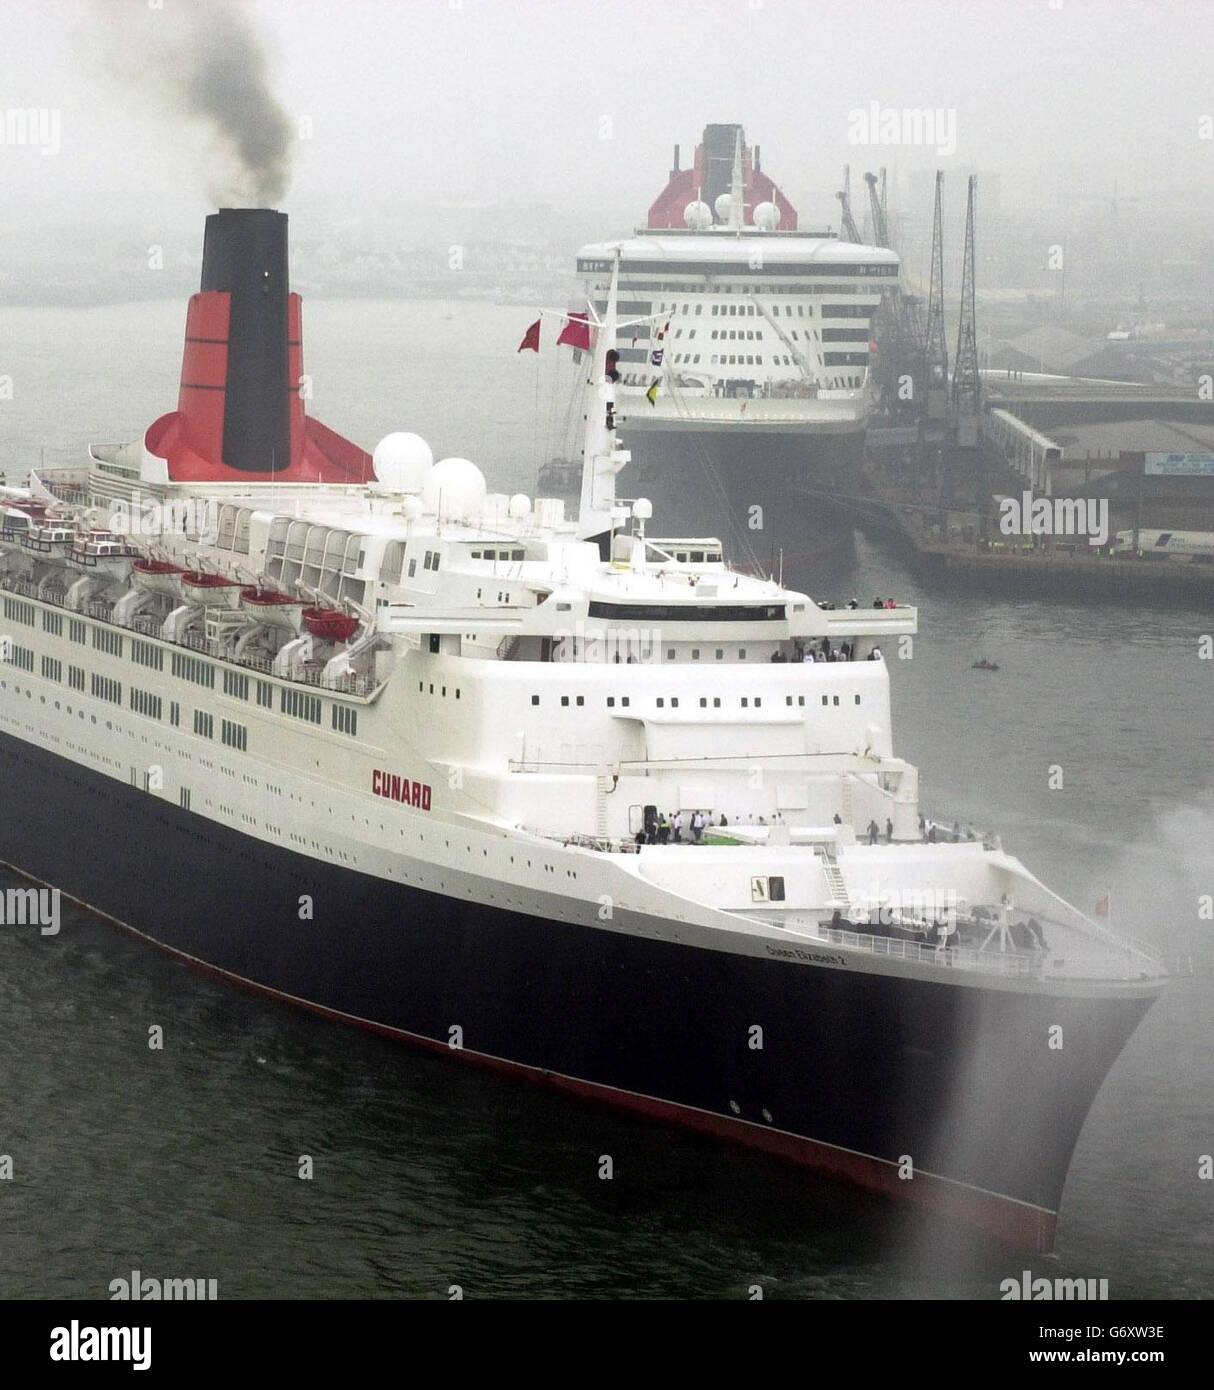 The QE 2 and the QM 2 - Stock Image